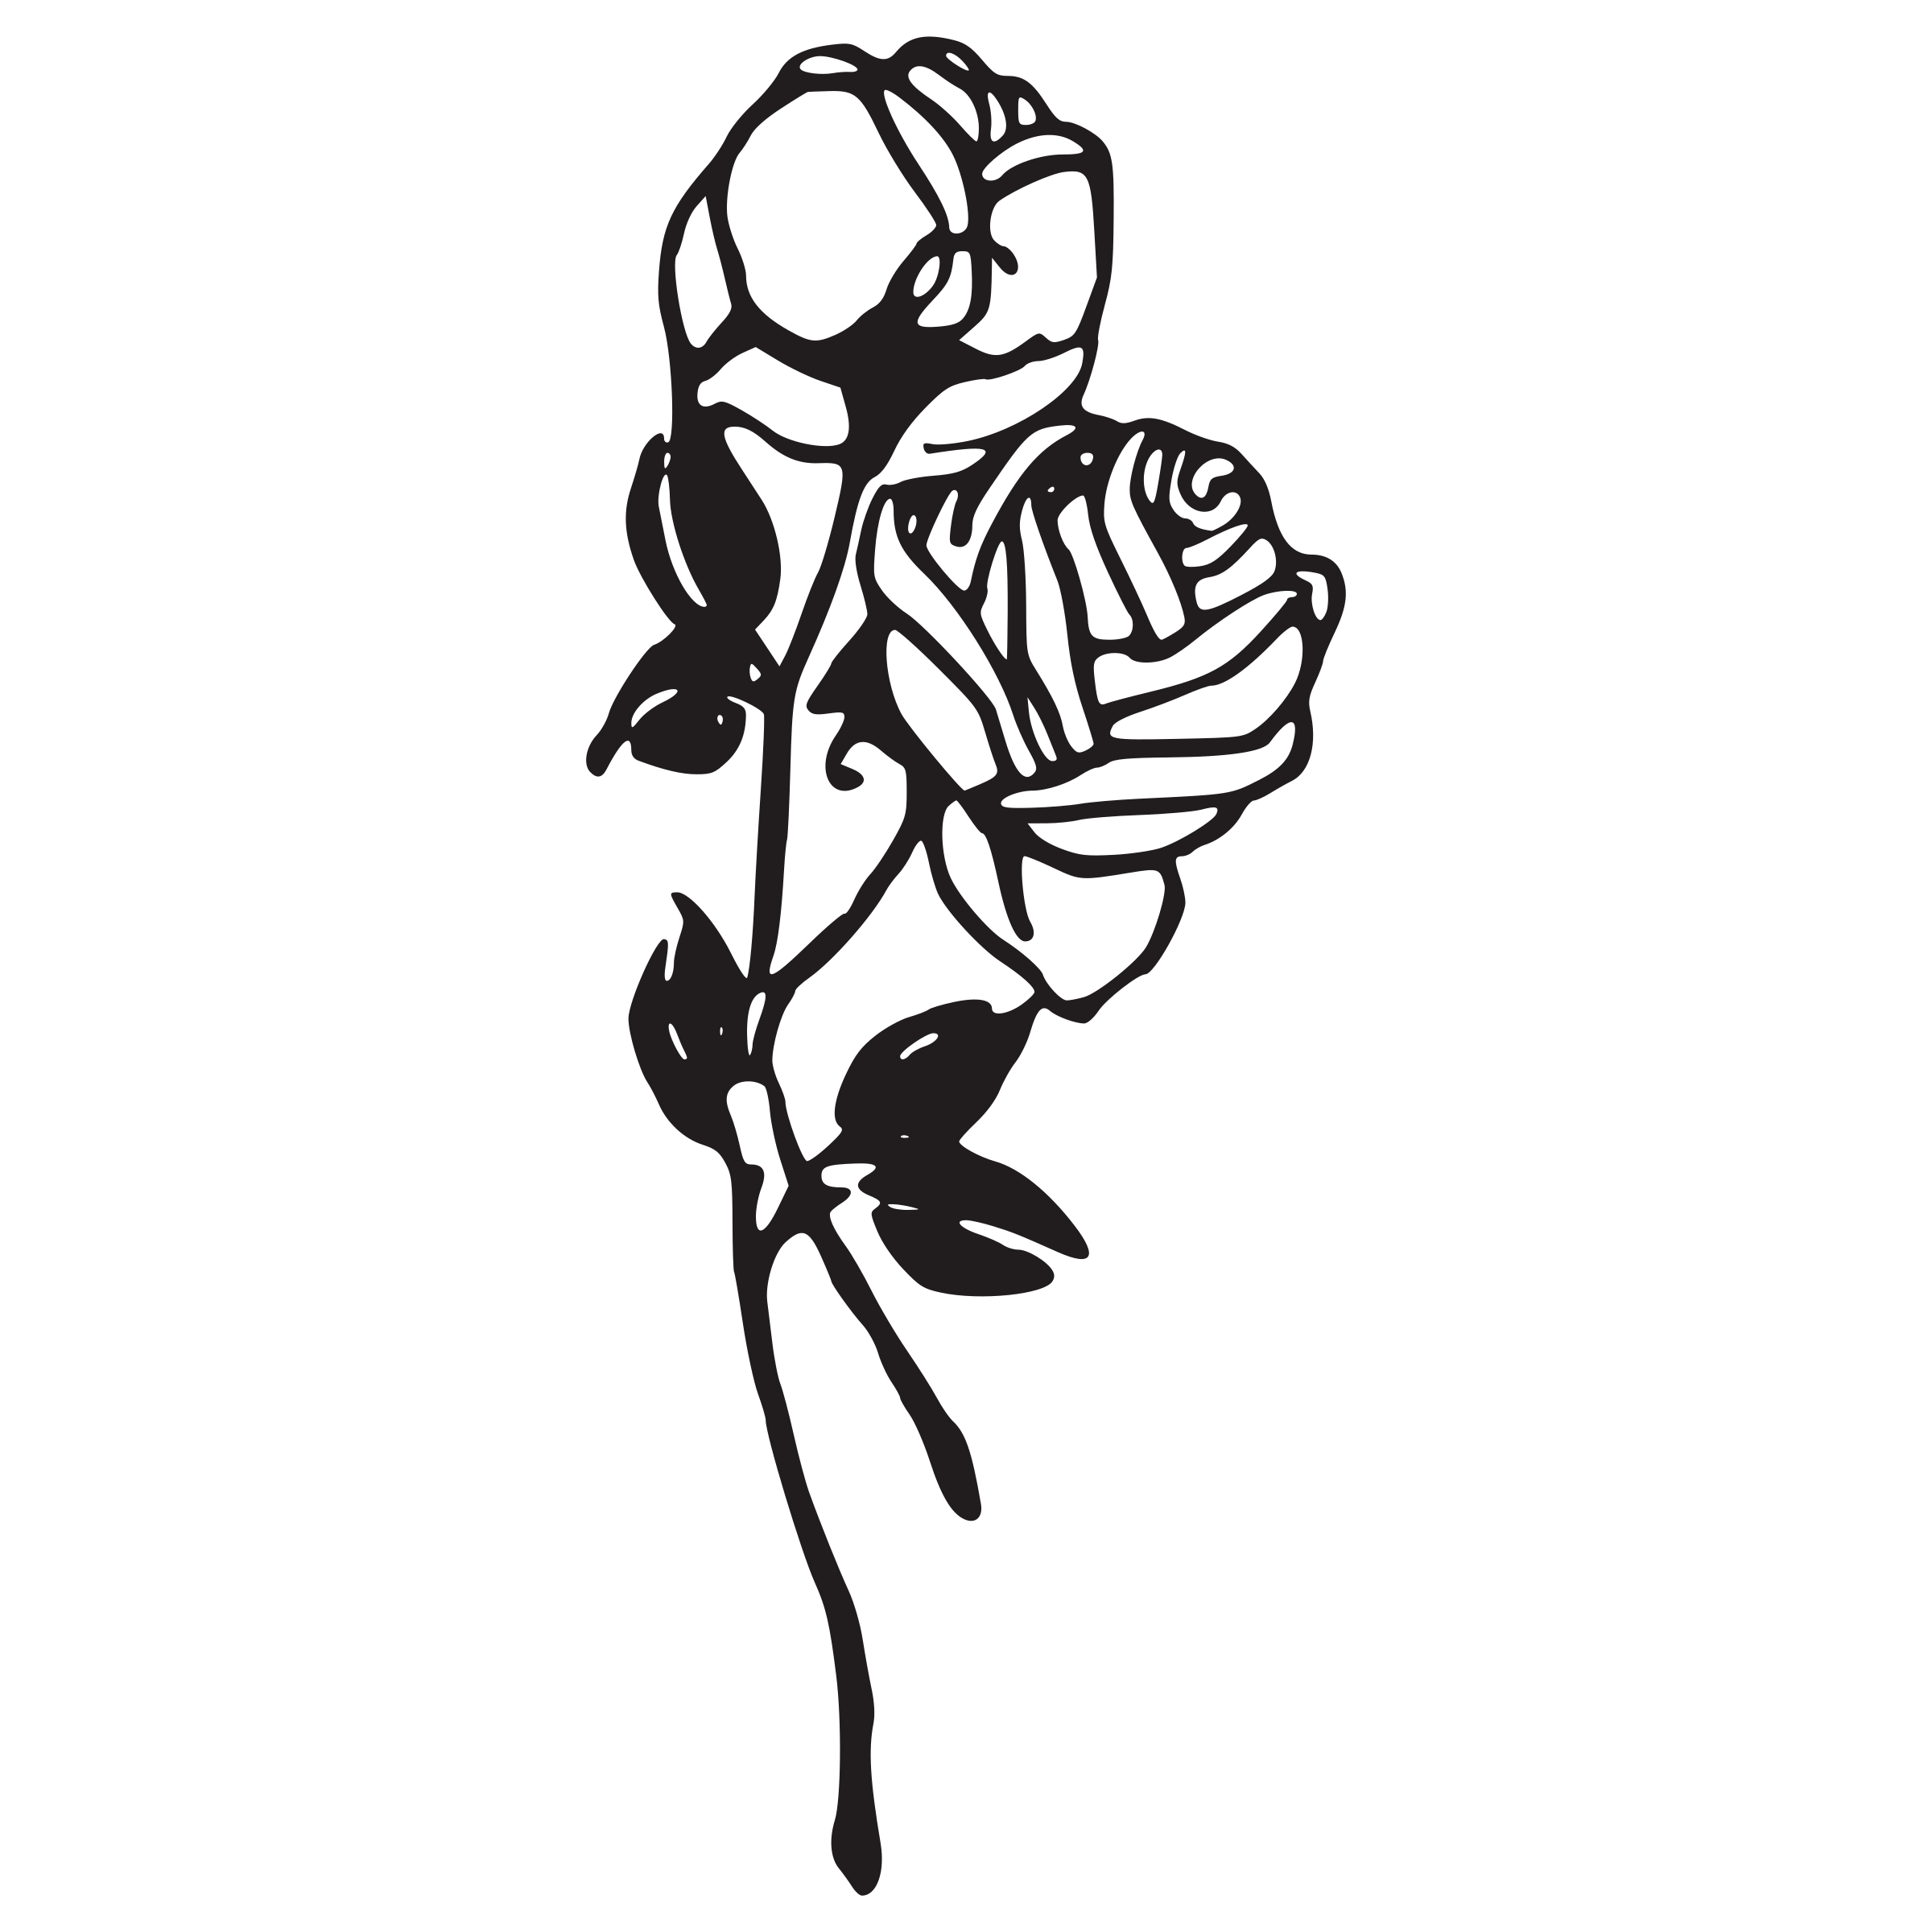 Black And White Rose Tattoo PNG Image Free Download